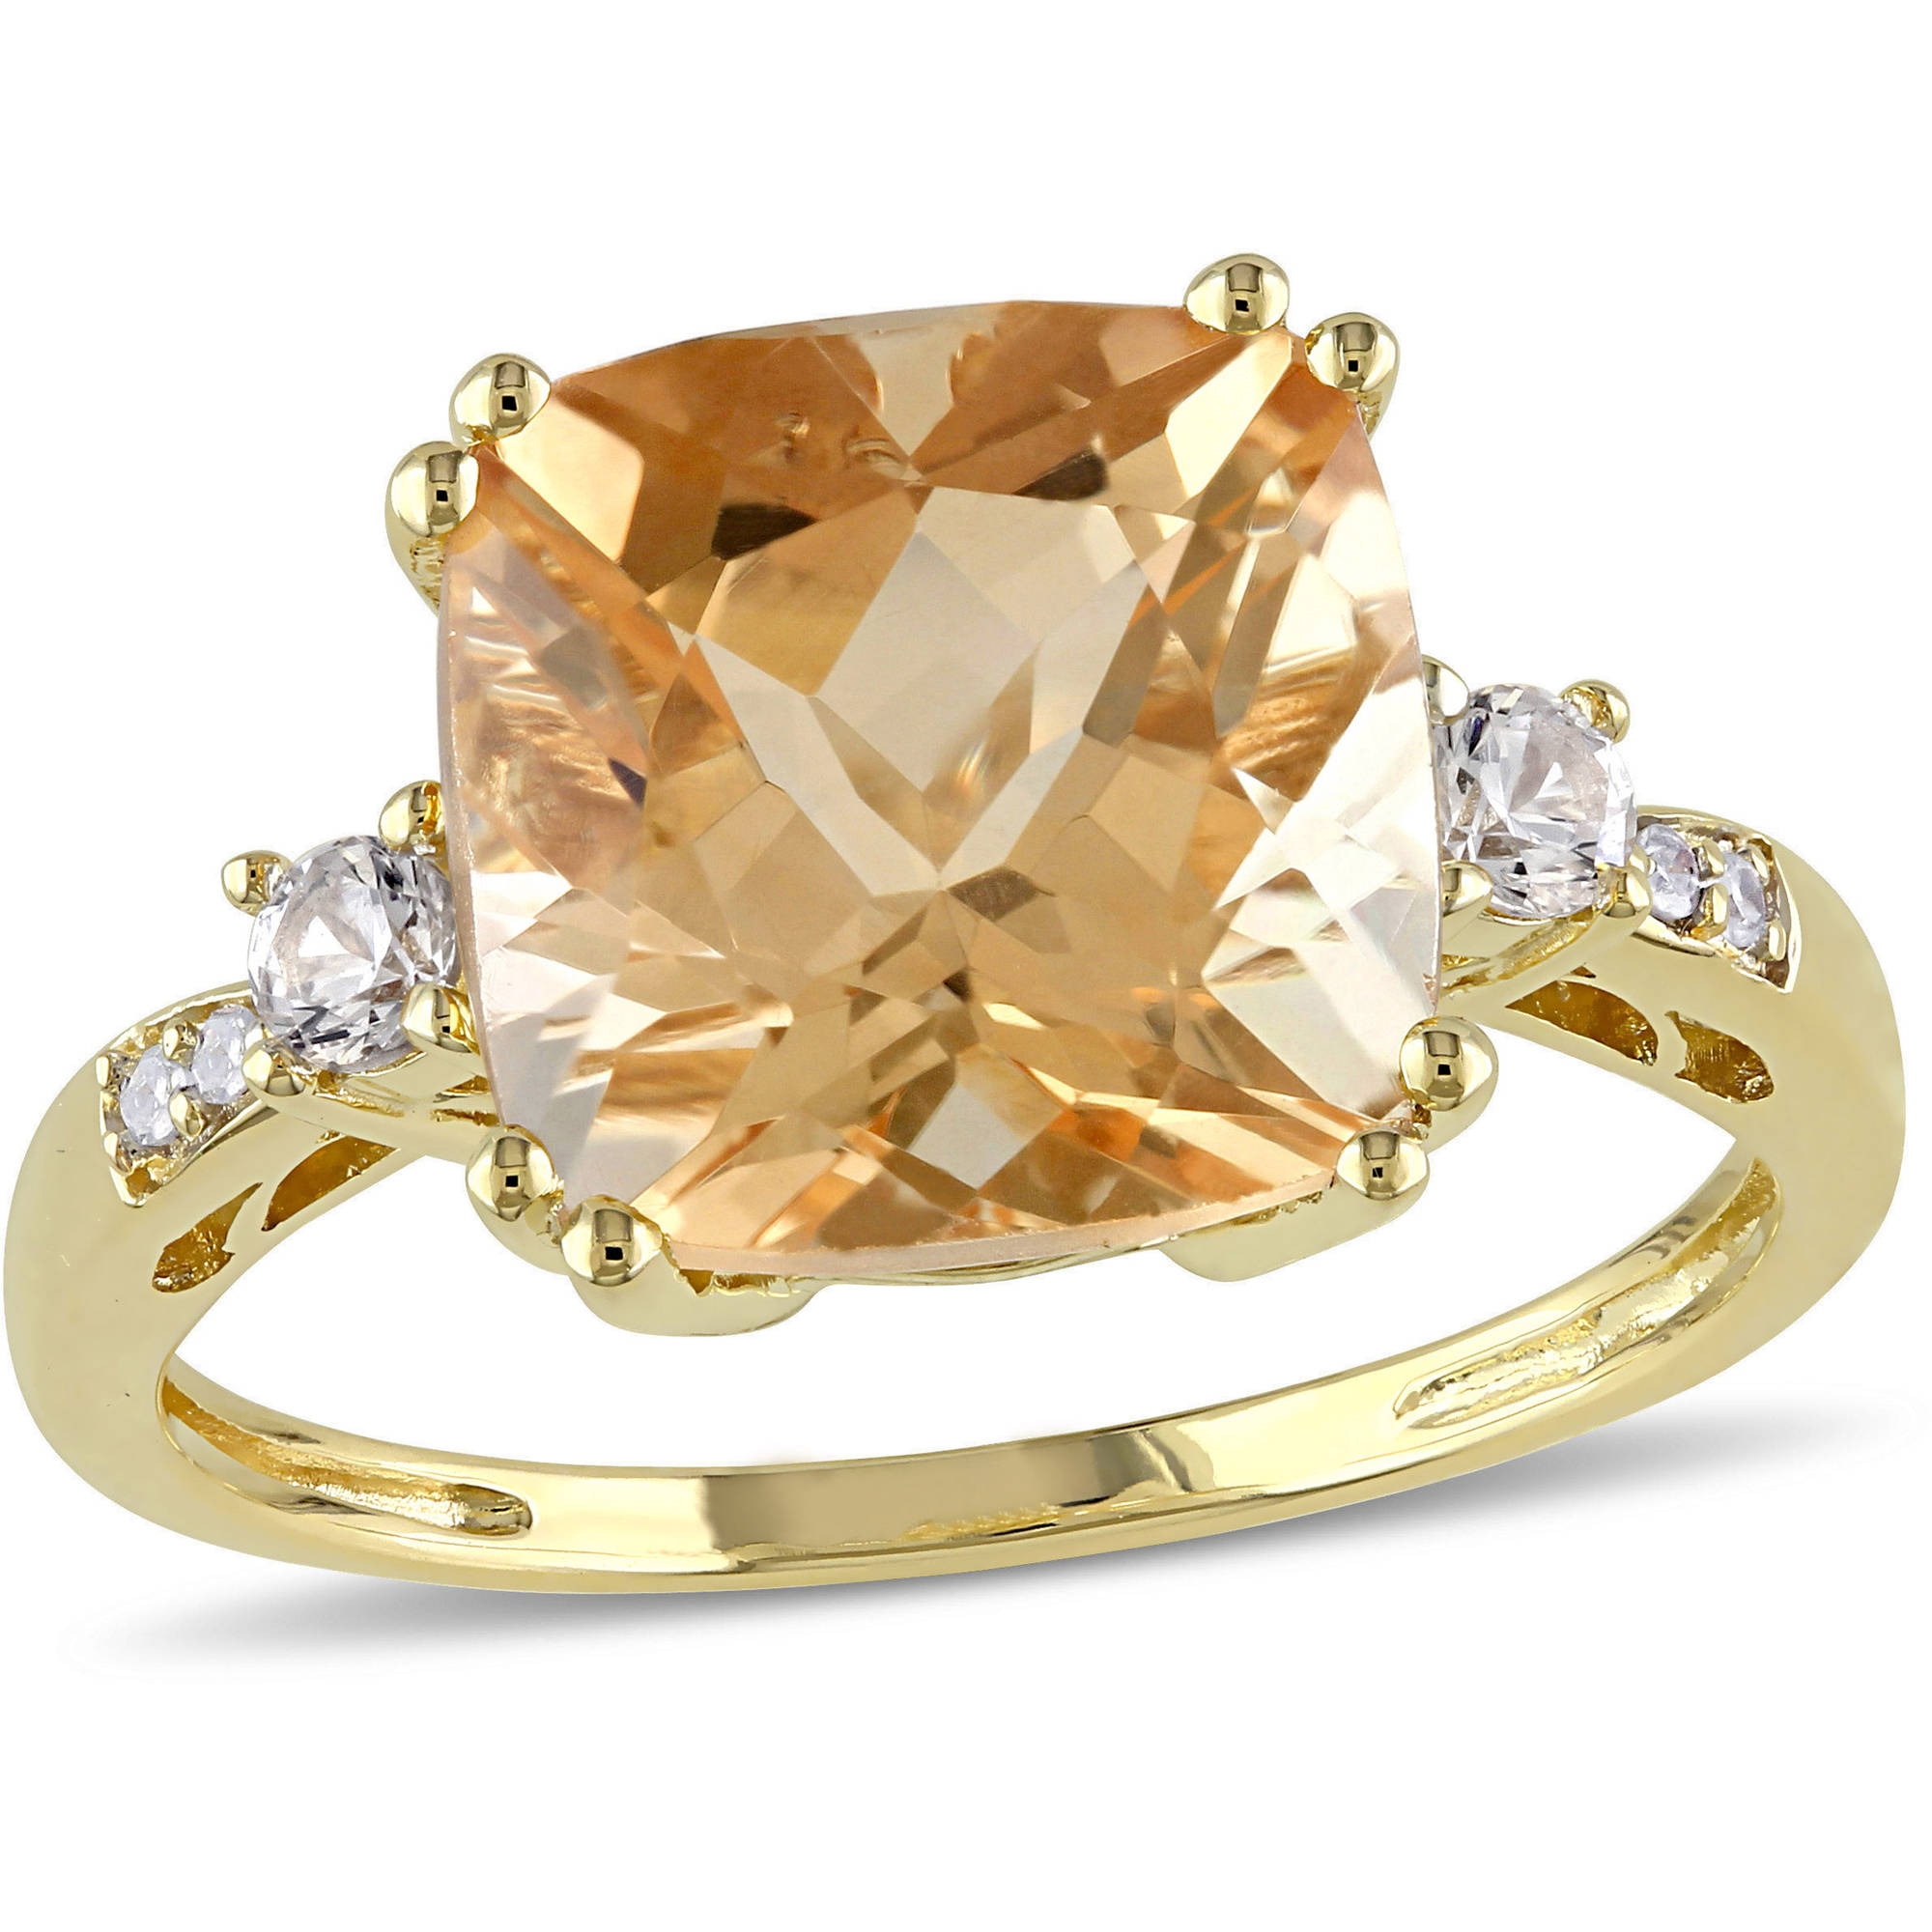 Tangelo 3-3 4 Carat T.G.W. Citrine and Created White Sapphire with Diamond-Accent 10kt Yellow Gold Cocktail Ring by Tangelo